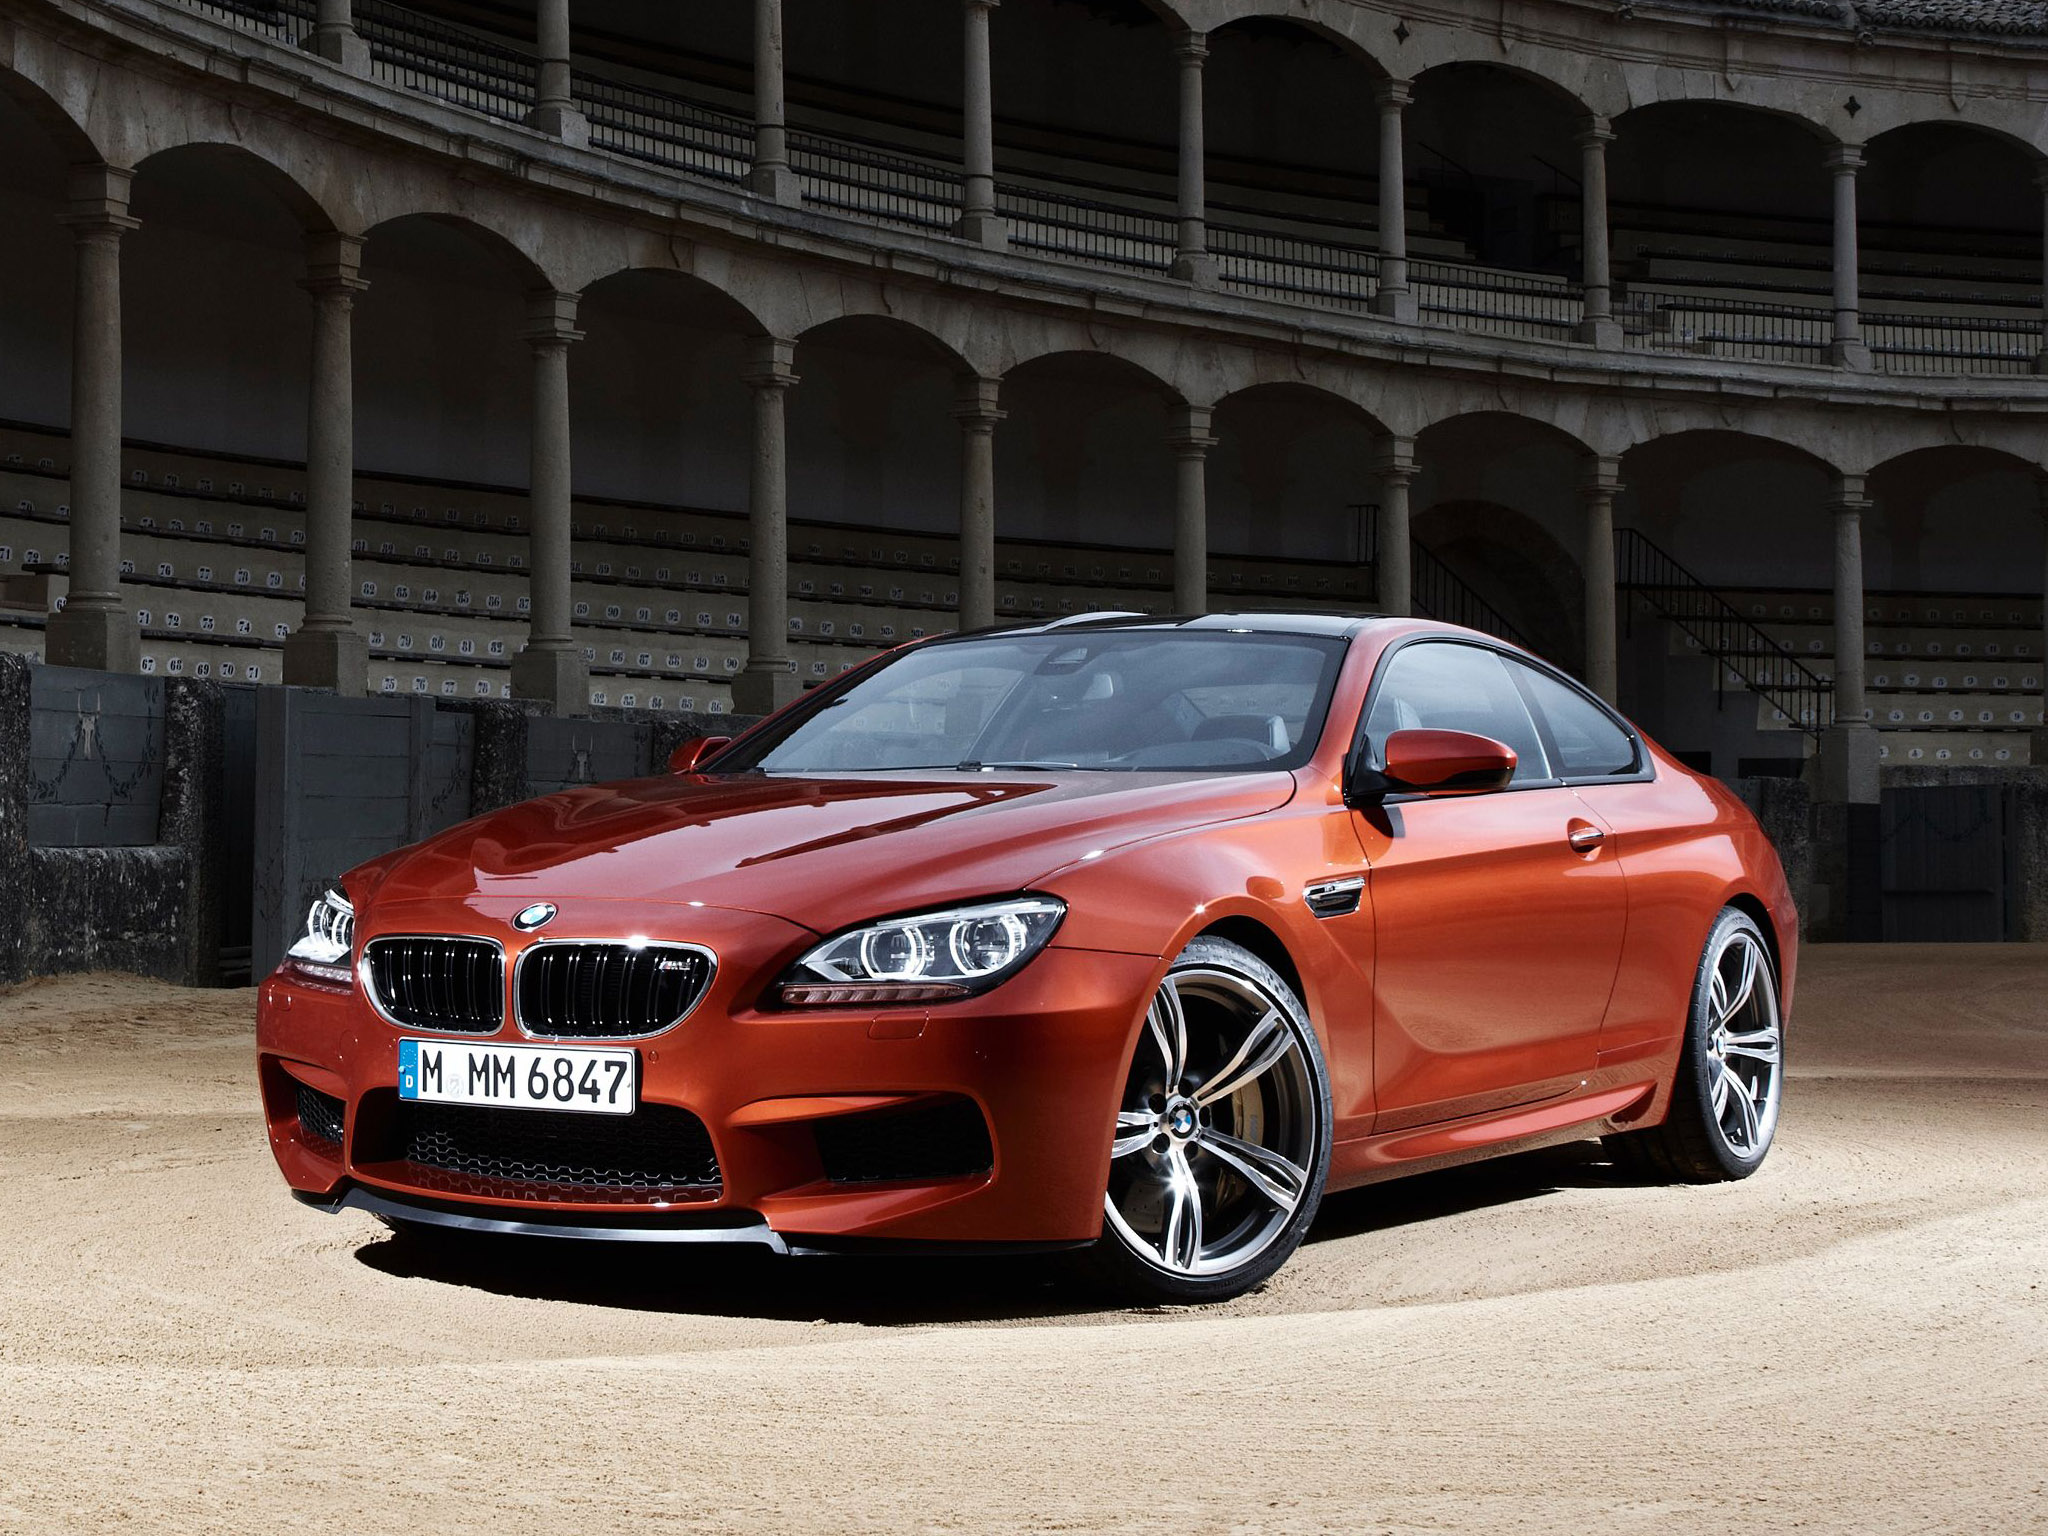 2012 bmw m6 f12 pictures information and specs auto. Black Bedroom Furniture Sets. Home Design Ideas